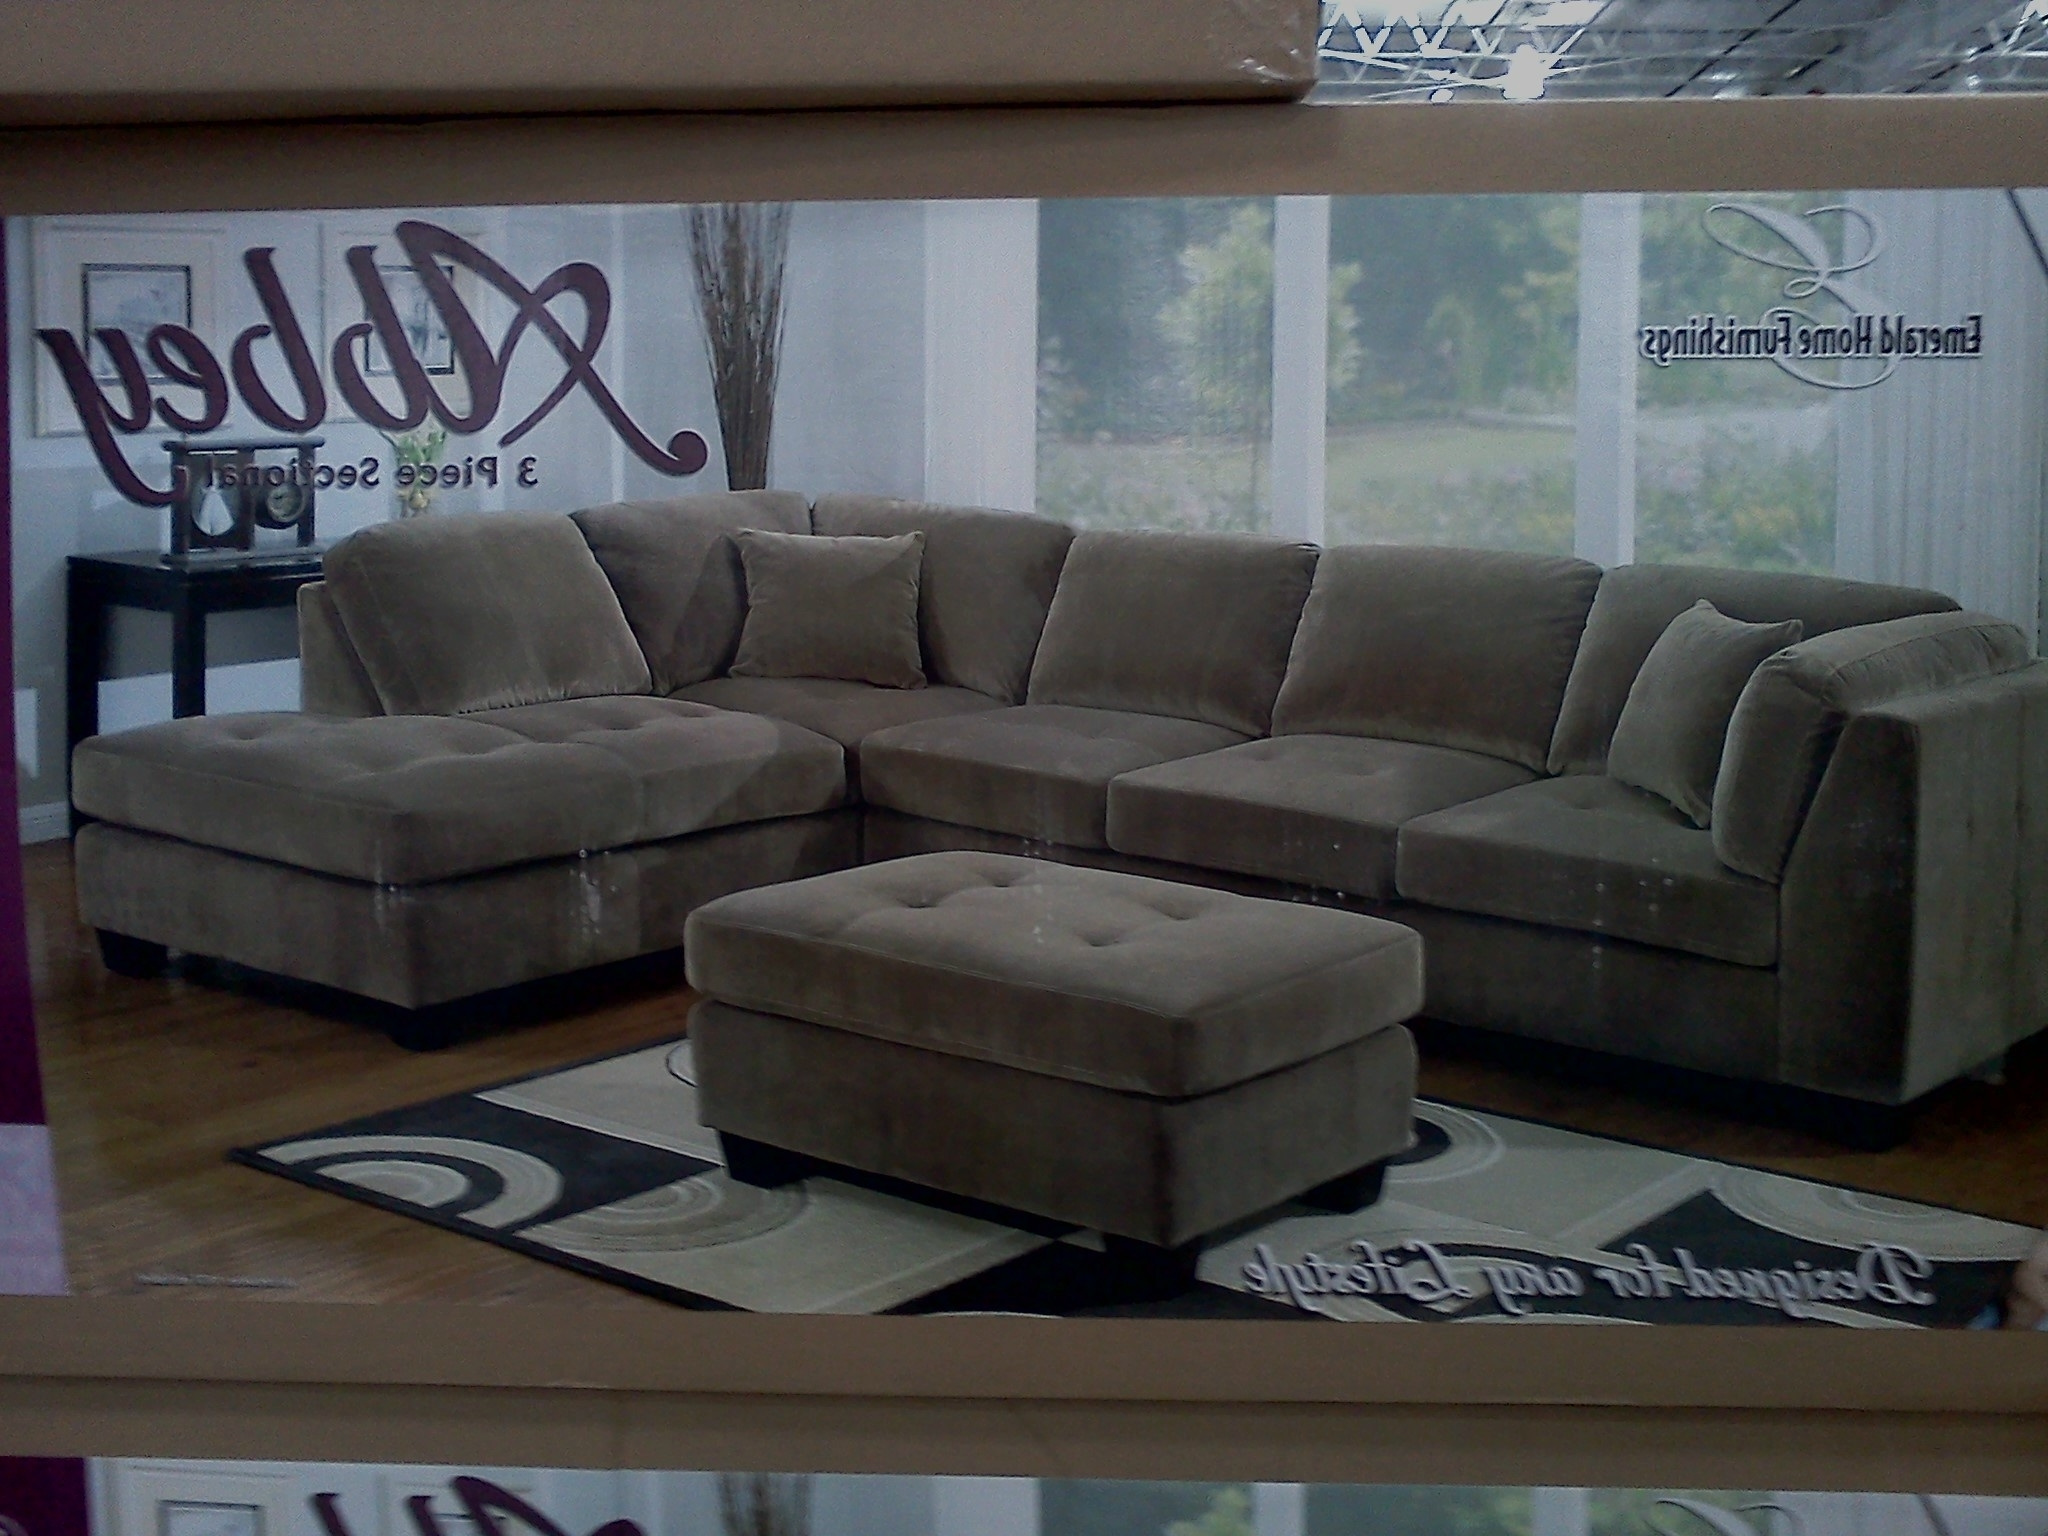 Most Recent Sectional Sofas At Costco Intended For Costco Emerald Home Modular Sectional Slickdeals – Kaf Mobile (View 12 of 20)